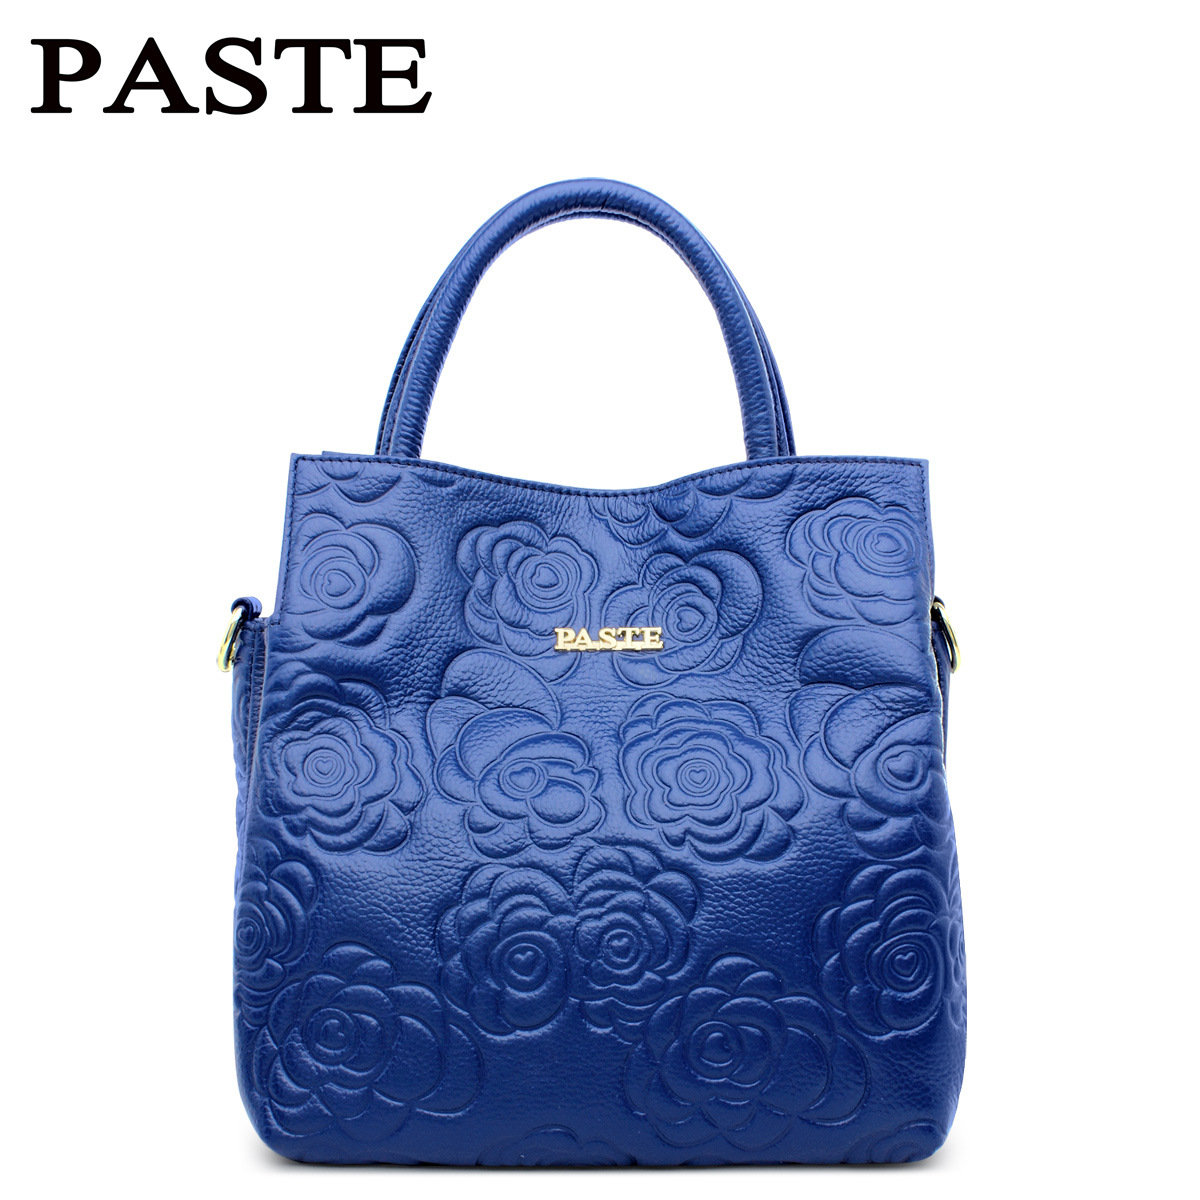 The first layer of leather handbags leather bag handbag new spring and summer 2017 female fashion 0369 polo women golf club clothing bag handbag nylon first layer of leather